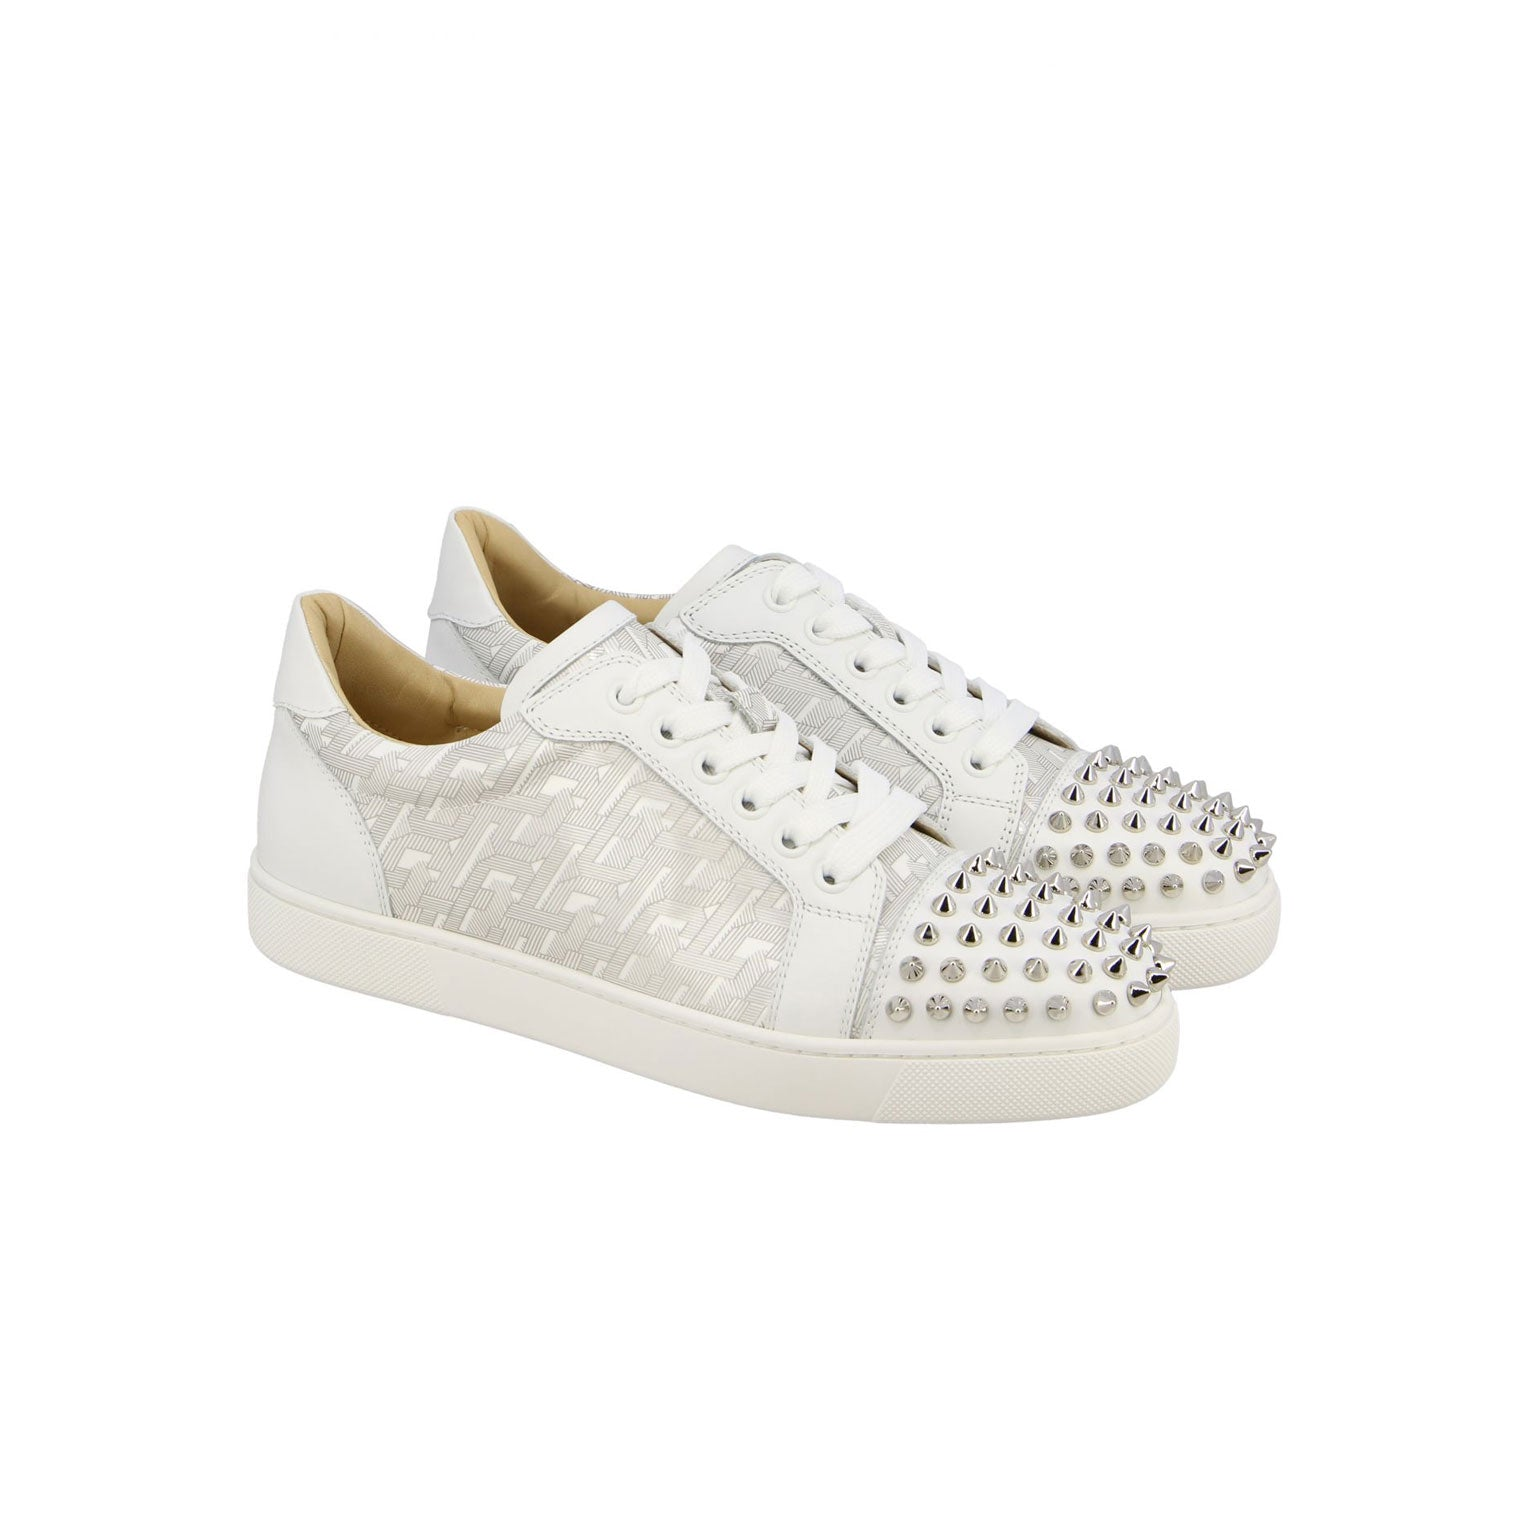 CHRISTIAN LOUBOUTIN low- white/grey silver spike women